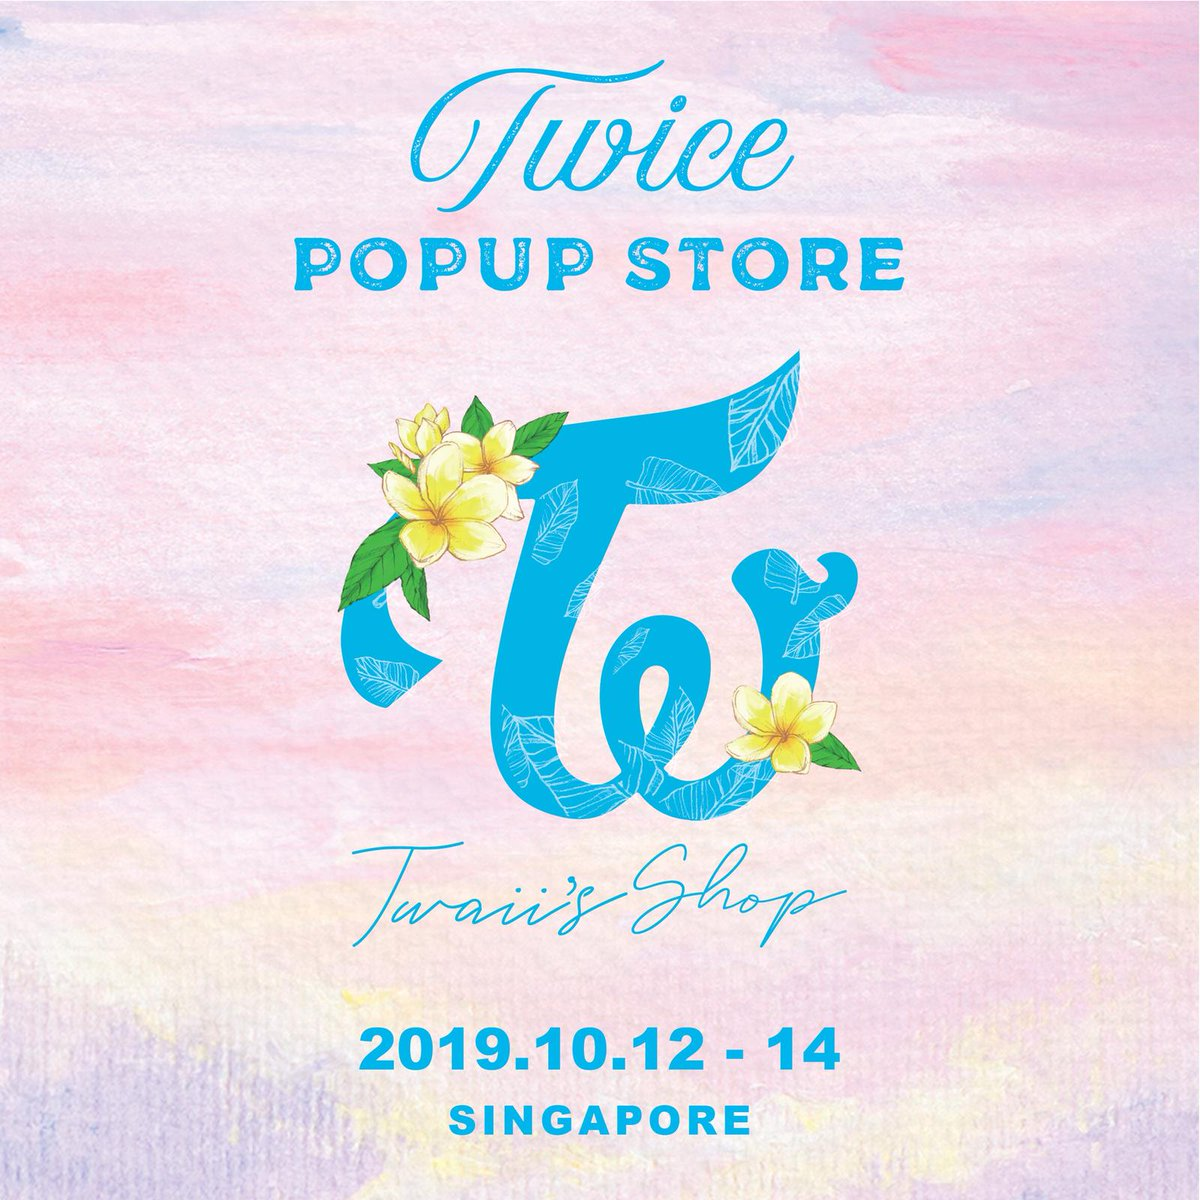 "TWICE POPUP STORE 'Twaii's Shop' coming to u this Oct! TWICE POPUP STORE ""Twaii's Shop"" in SINGAPORE DATE:10.12 (SAT) – 10.14 (MON) *WHILE STOCKS LAST LOCATION: *SCAPE, 2F OPERATING HOURS:11:00am – 8:00pm More info: @OneProductionSG #TwaiisshopinSG #TWICEPOPUPSTOREinSG"